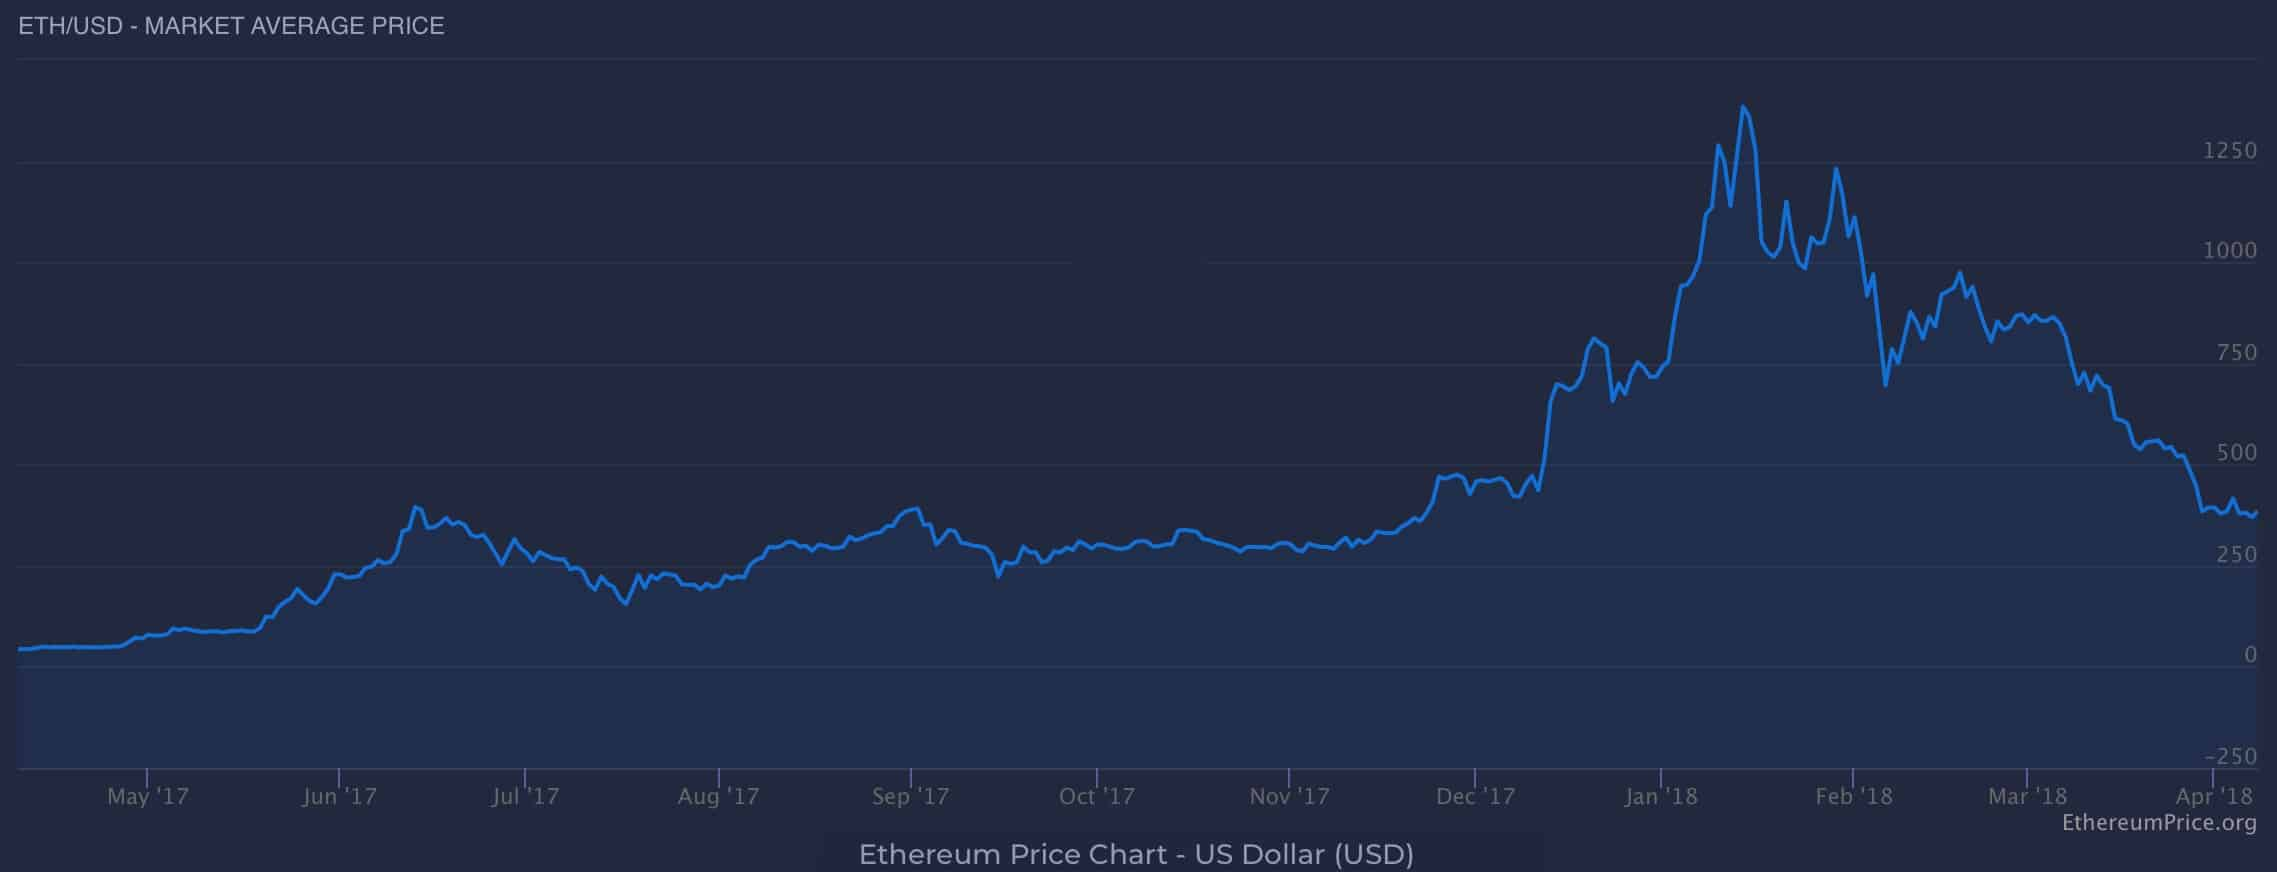 How ethereum price is determined